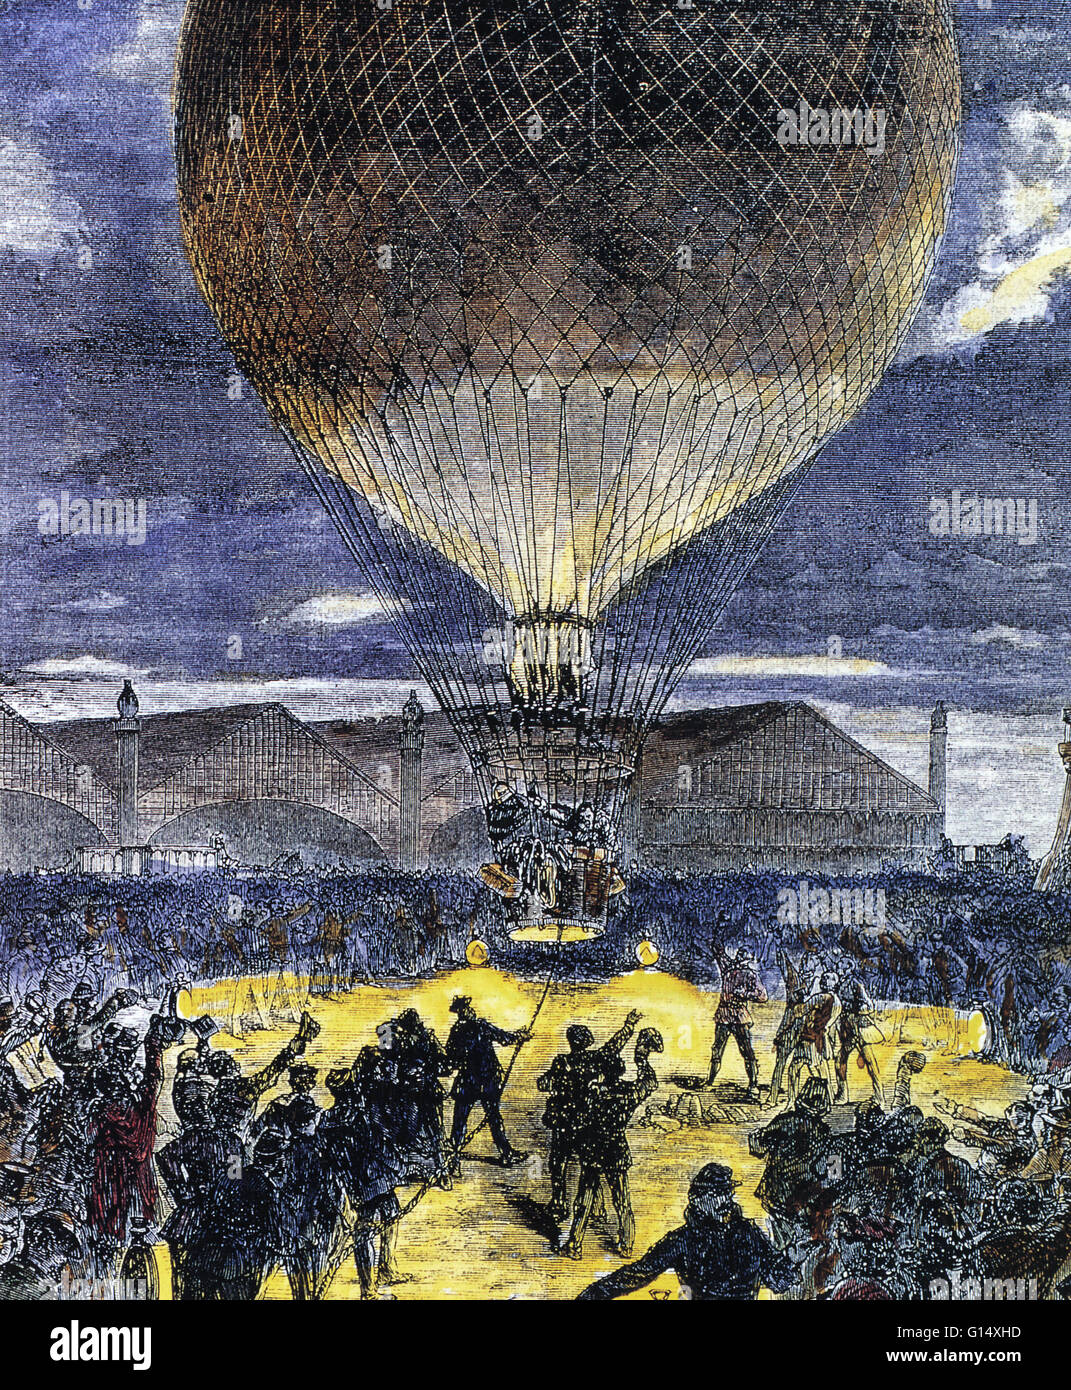 The launch of a hydrogen-filled balloon. Hydrogen-filled balloons were used to fly over hostile territory during - Stock Image